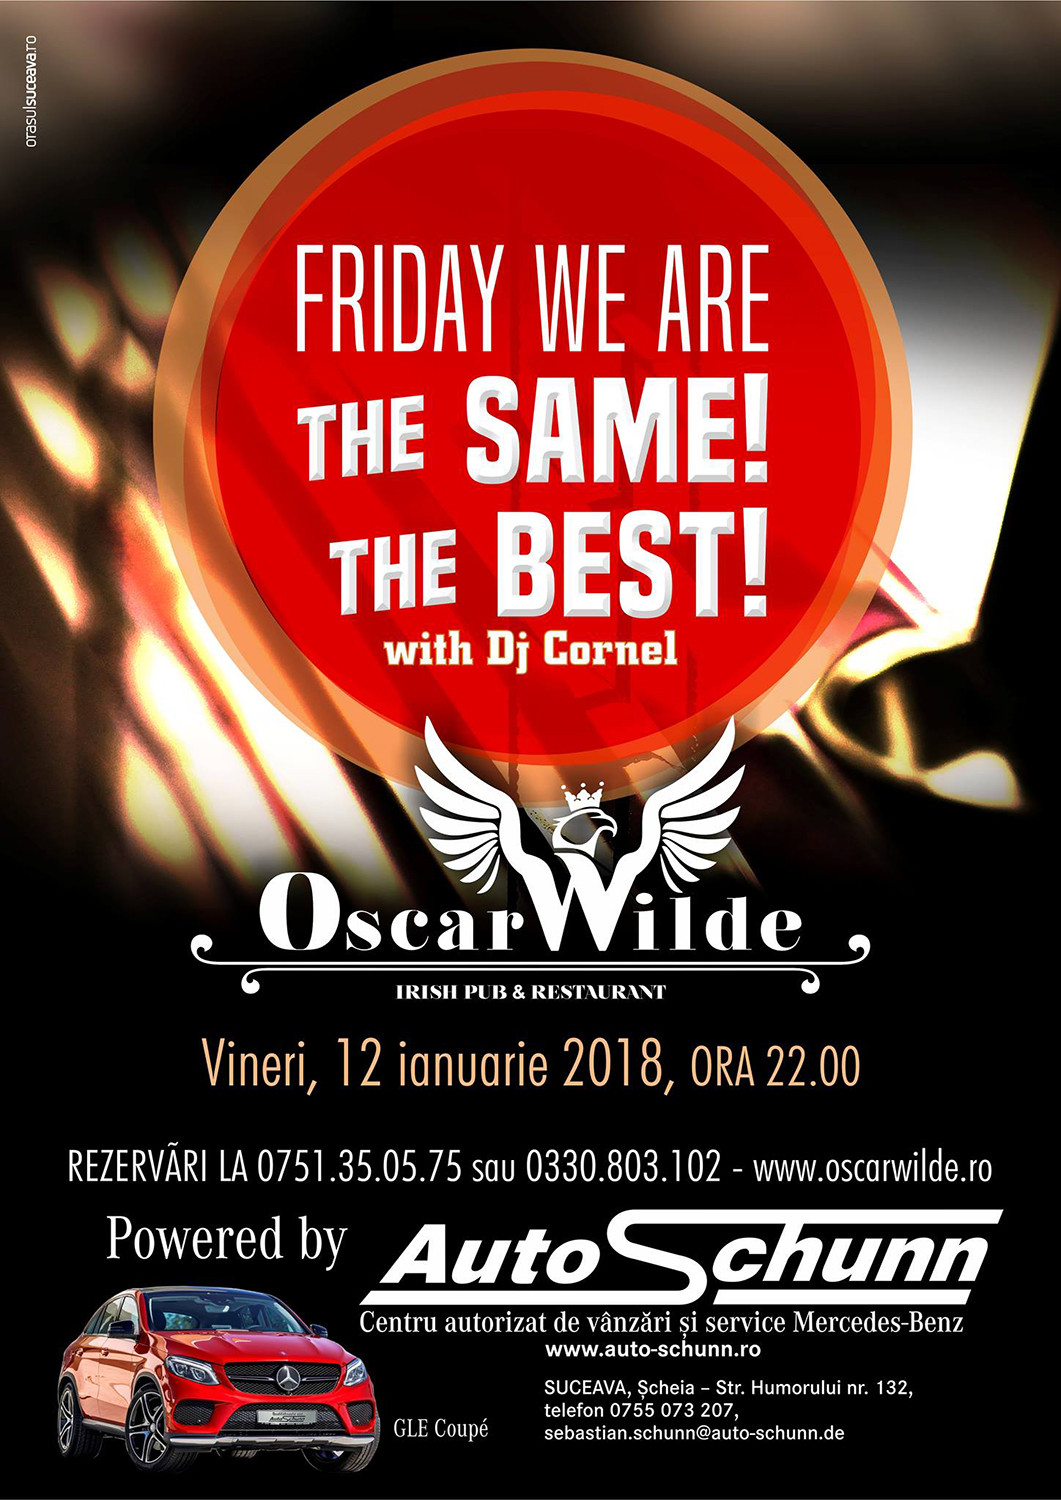 Friday we are the same, the best!